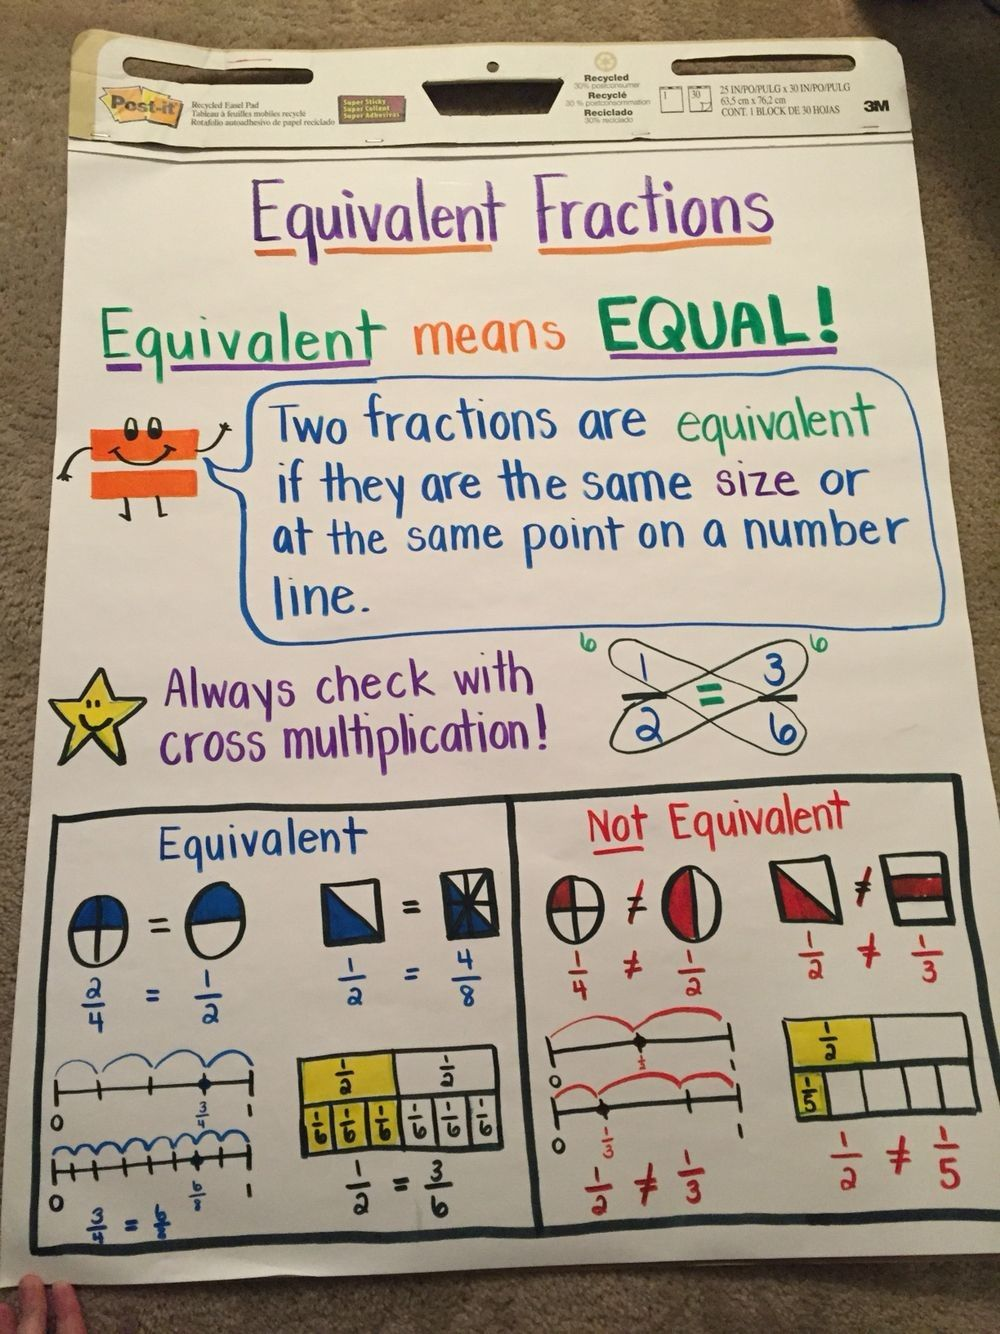 3 Worksheet Free Math Worksheets Fifth Grade 5 Fractions Multiplication Division Multiply Fractions Whole Number Missing Factor In 2020 Math Charts Math Fractions Teaching Fractions